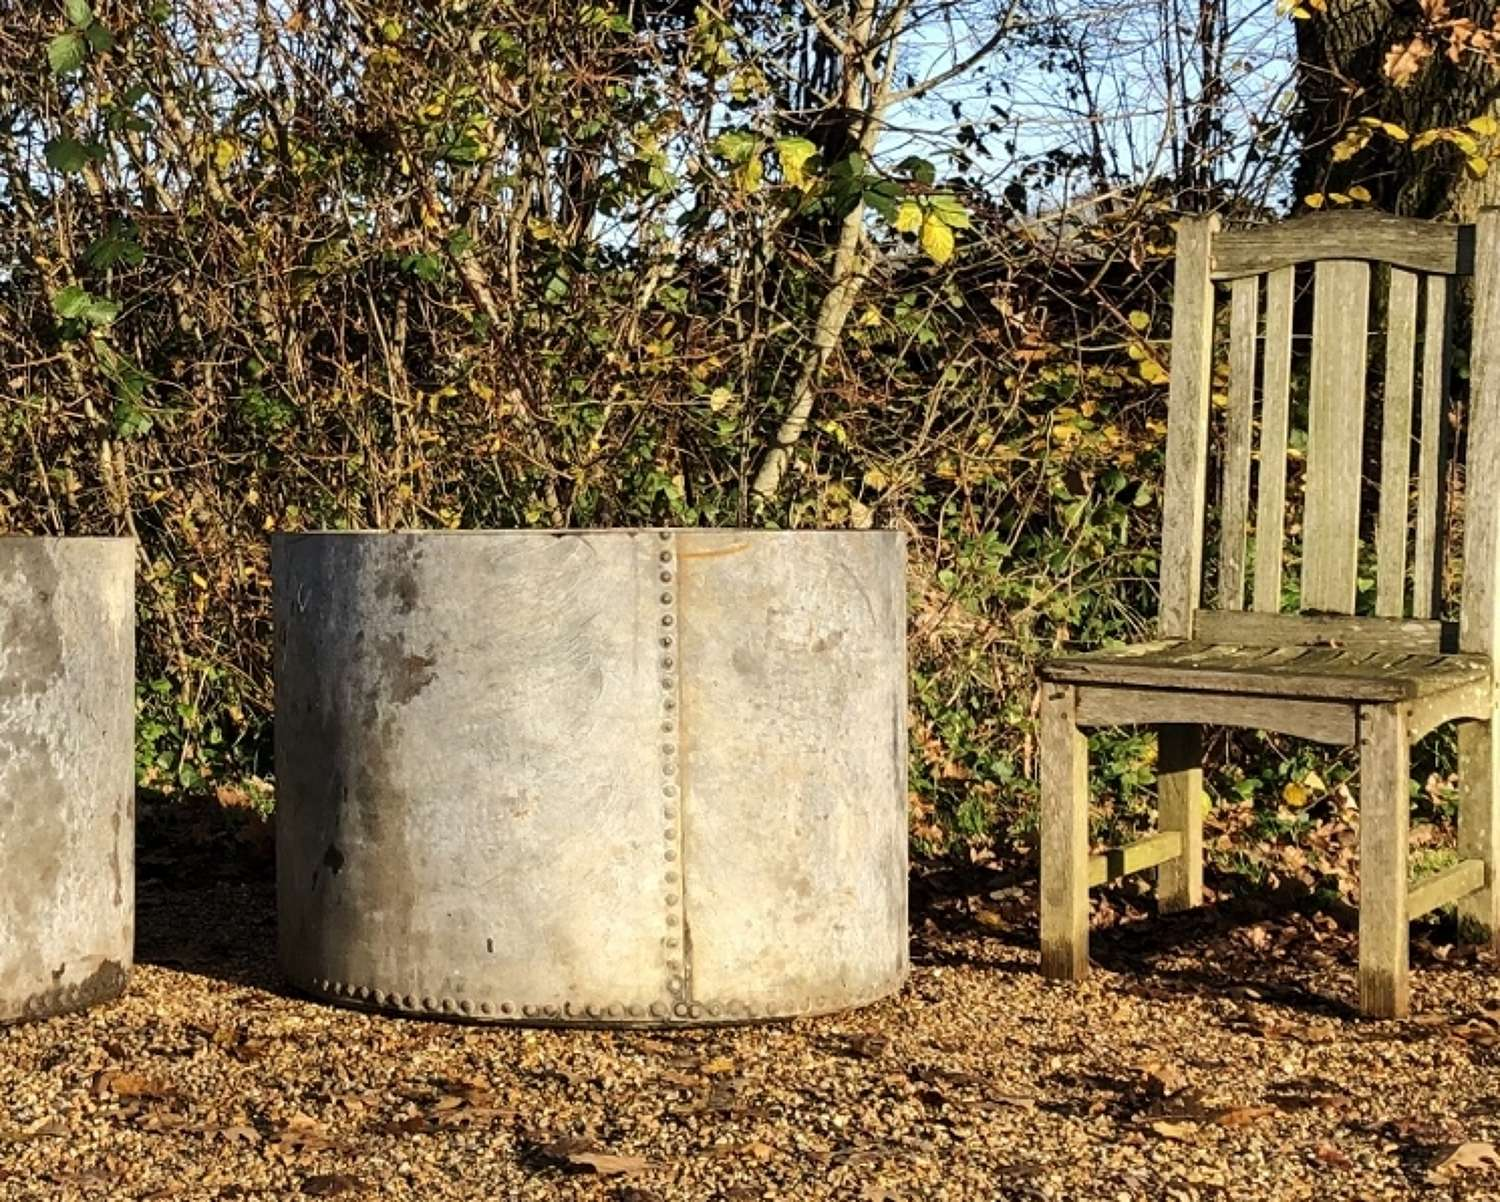 Large Studded Planter or Water Butt